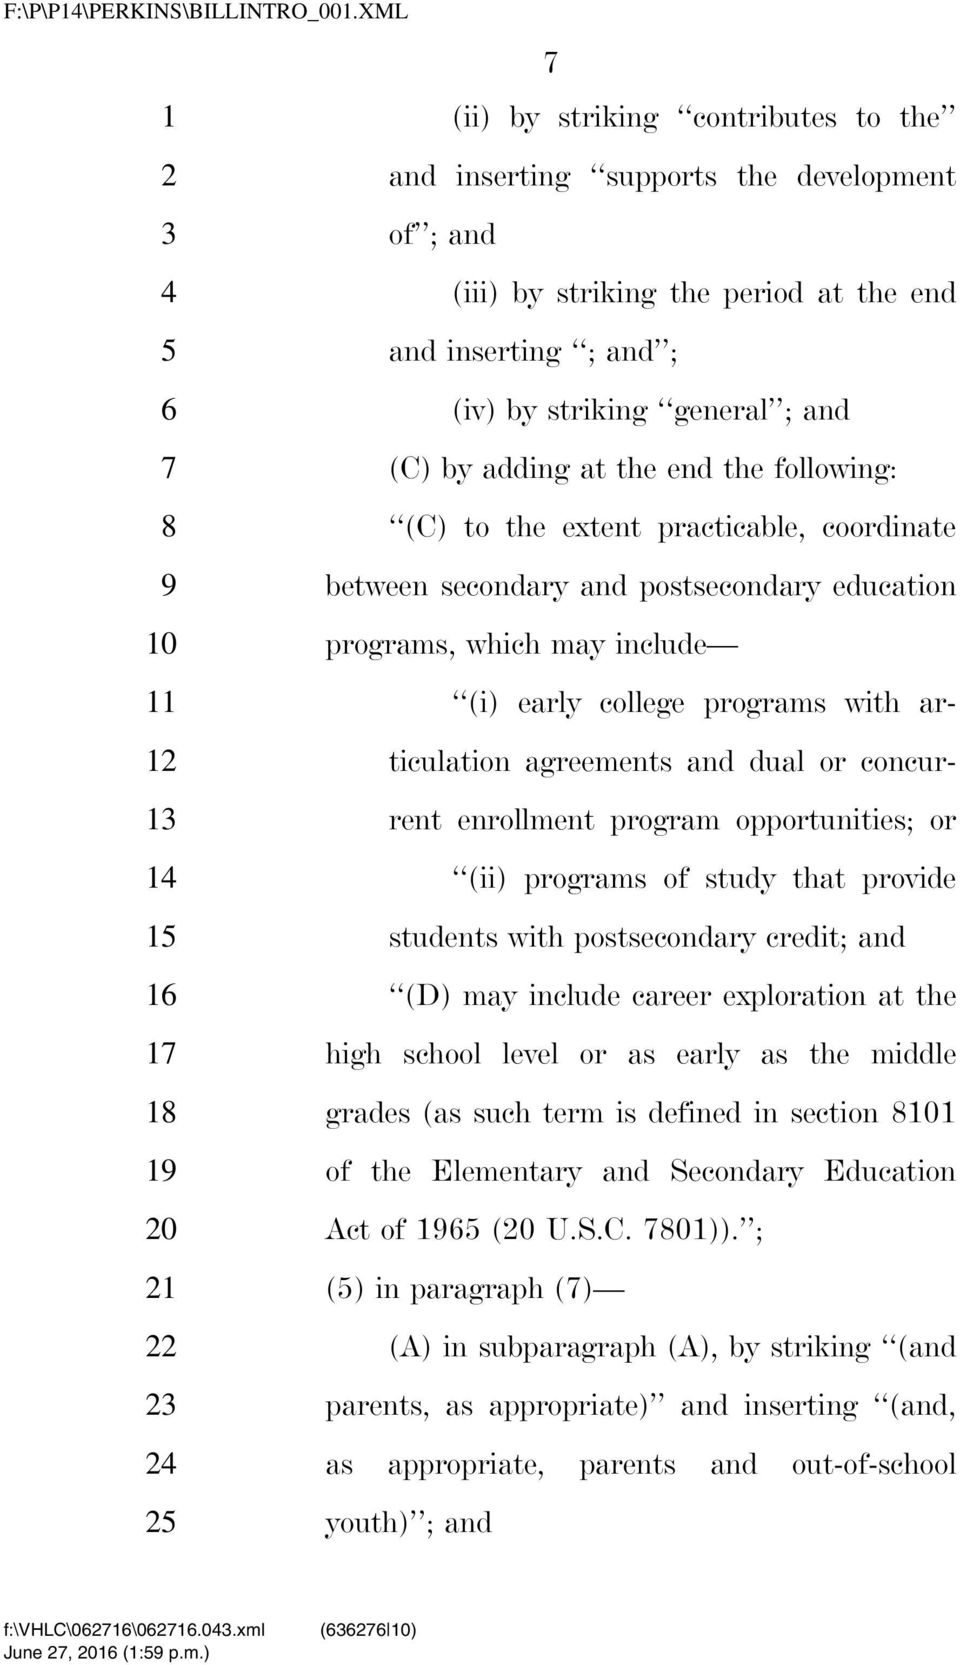 at the end the following: (C) to the extent practicable, coordinate between secondary and postsecondary education programs, which may include (i) early college programs with articulation agreements